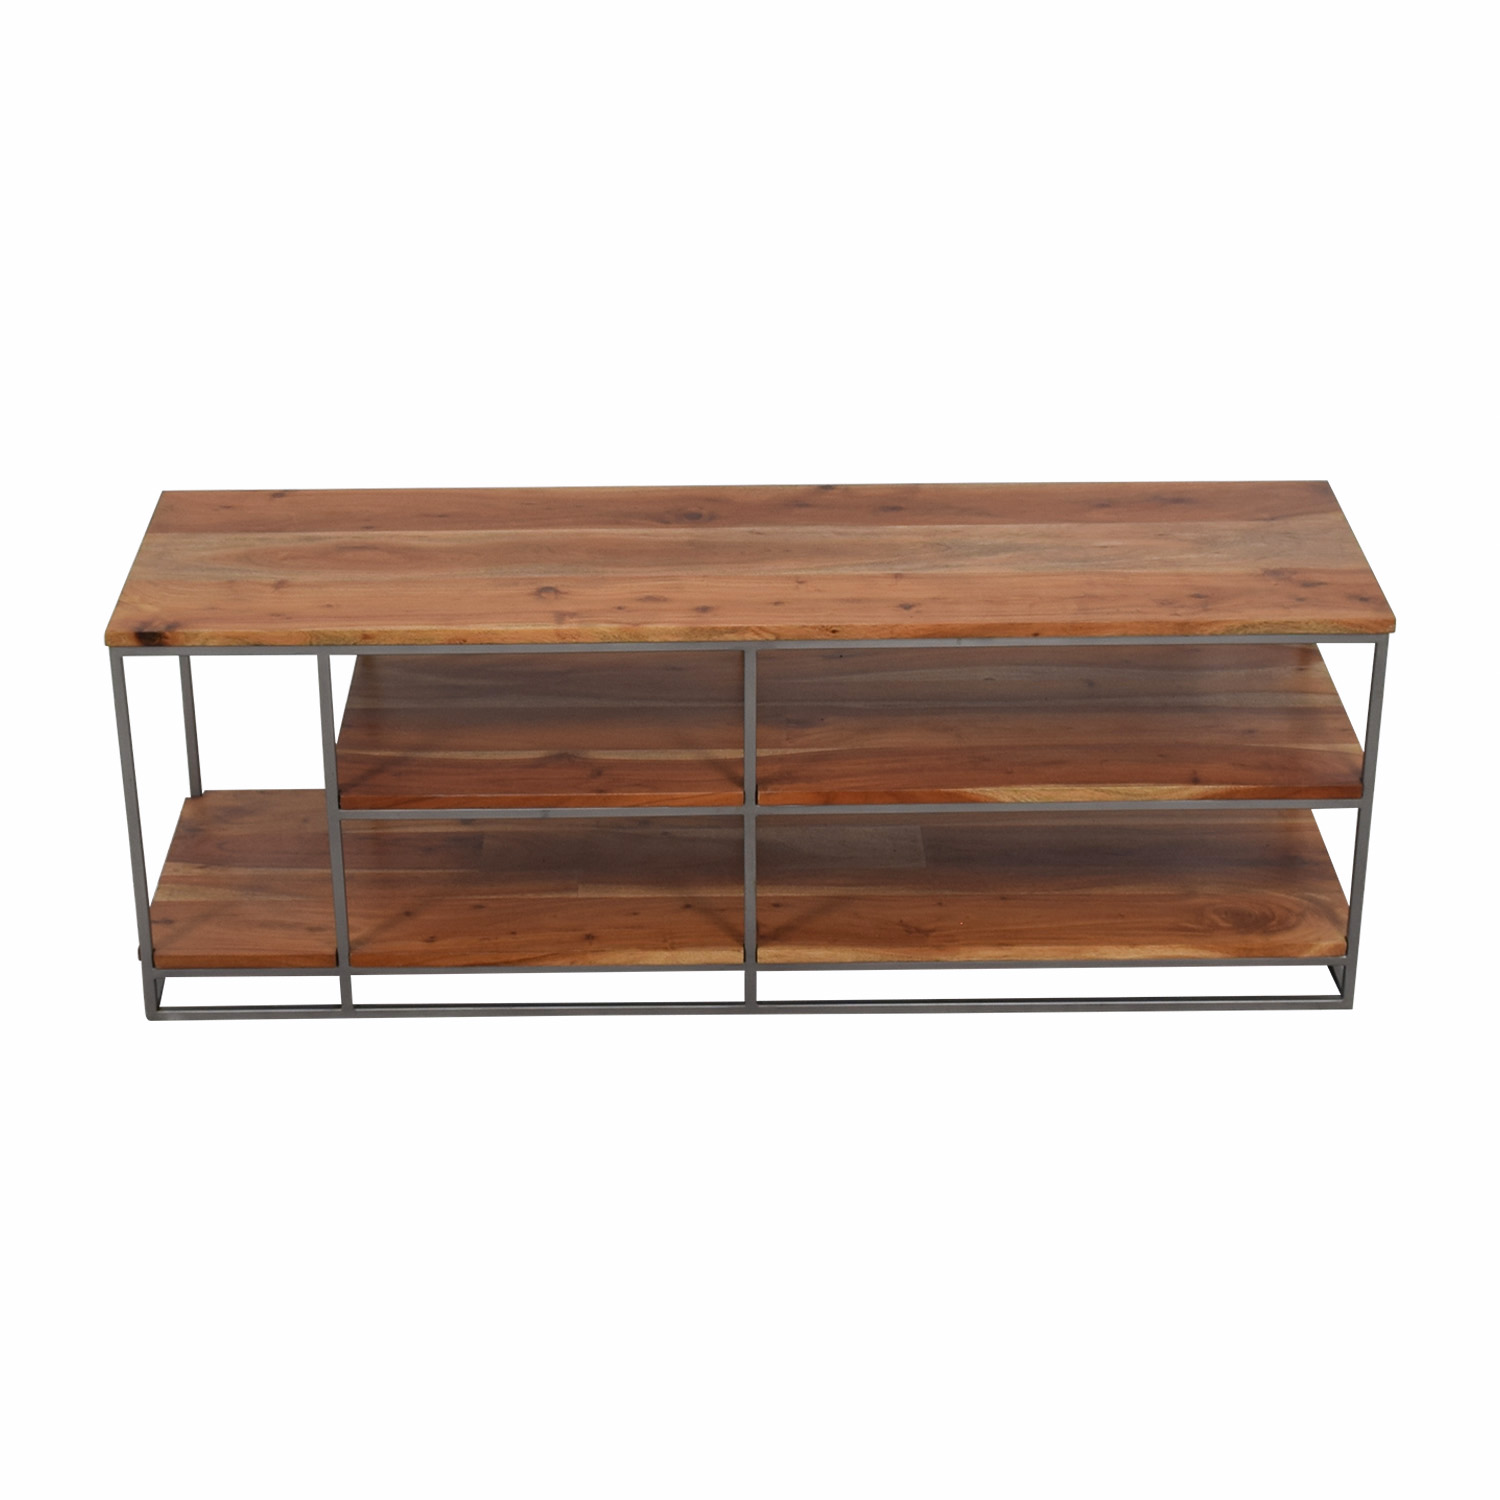 shop Crate & Barrel Crate & Barrel Wood and Wrought Iron Shelf and Media Center online